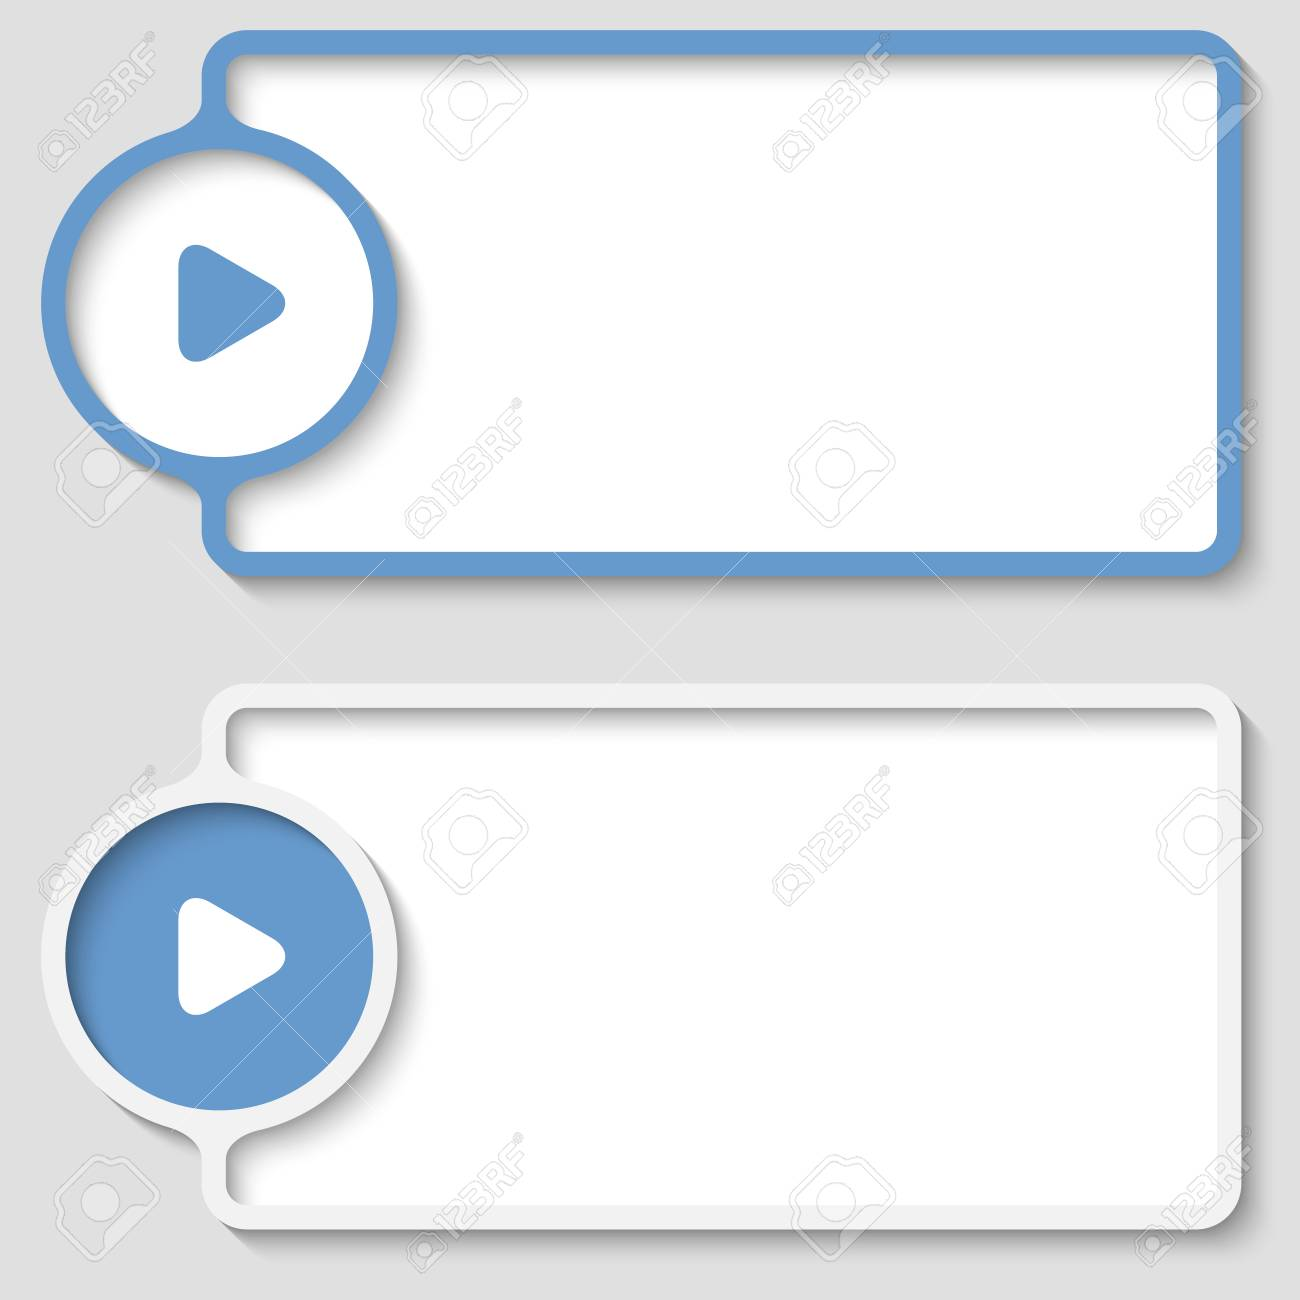 Set Of Two Abstract Text Frame With Play Symbol Royalty Free